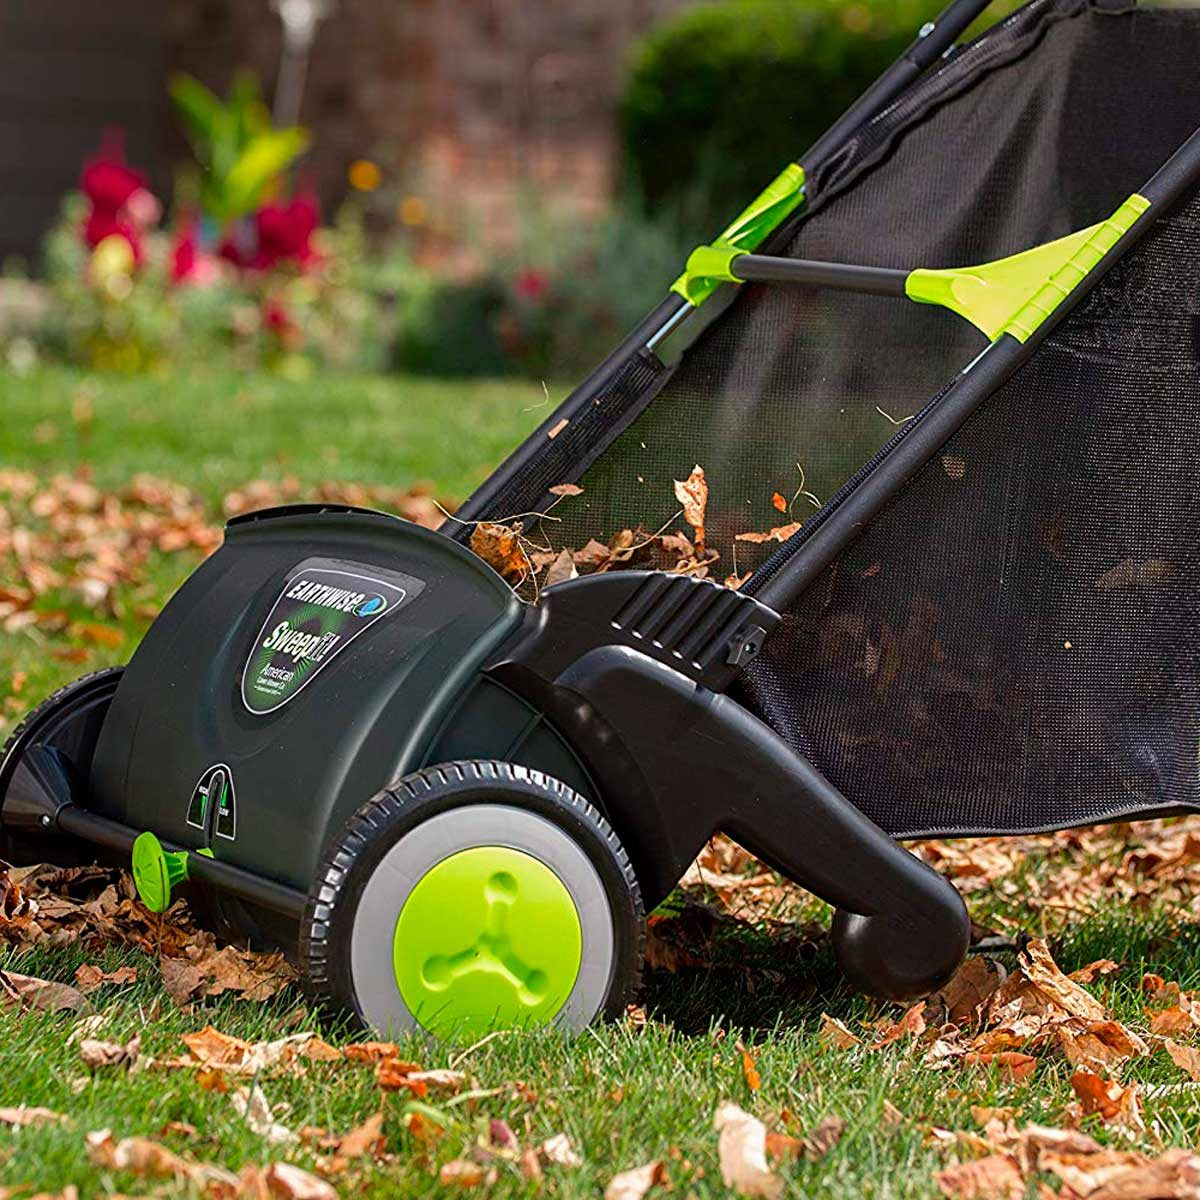 Lawn sweeper